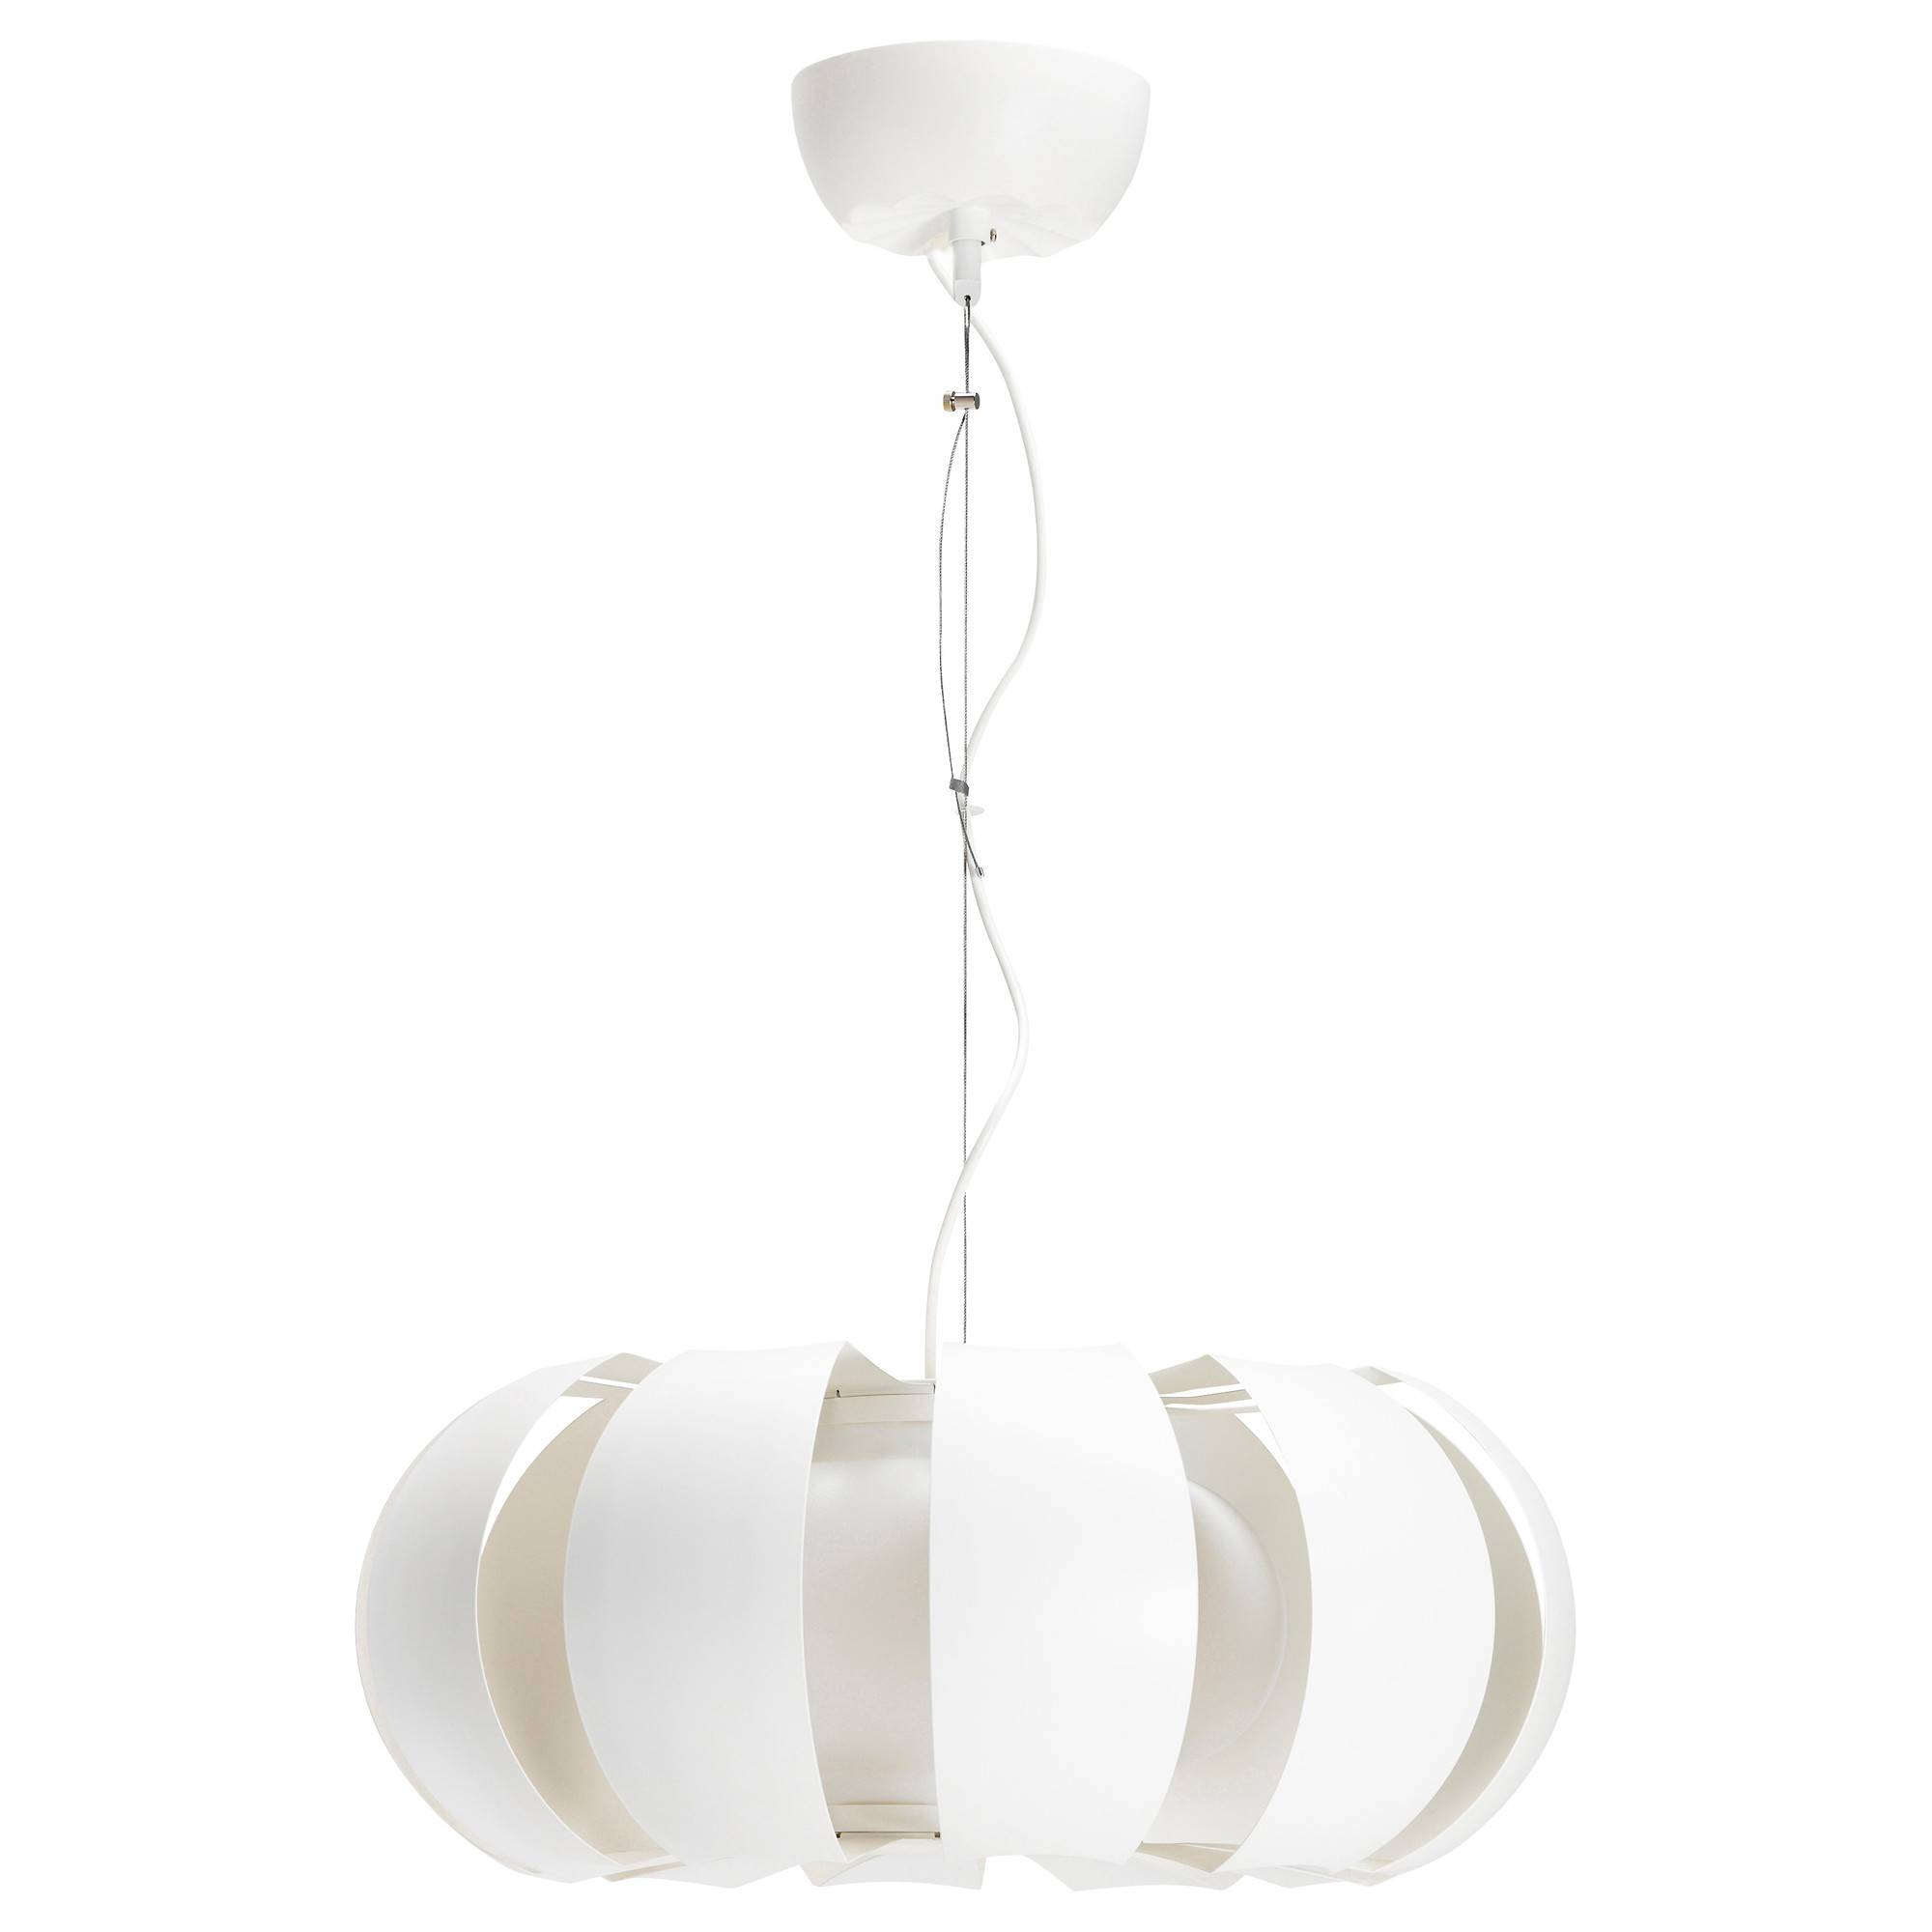 Ceiling Lights & Lamps - Ikea with regard to Ikea Plug in Pendant Lights (Image 3 of 15)